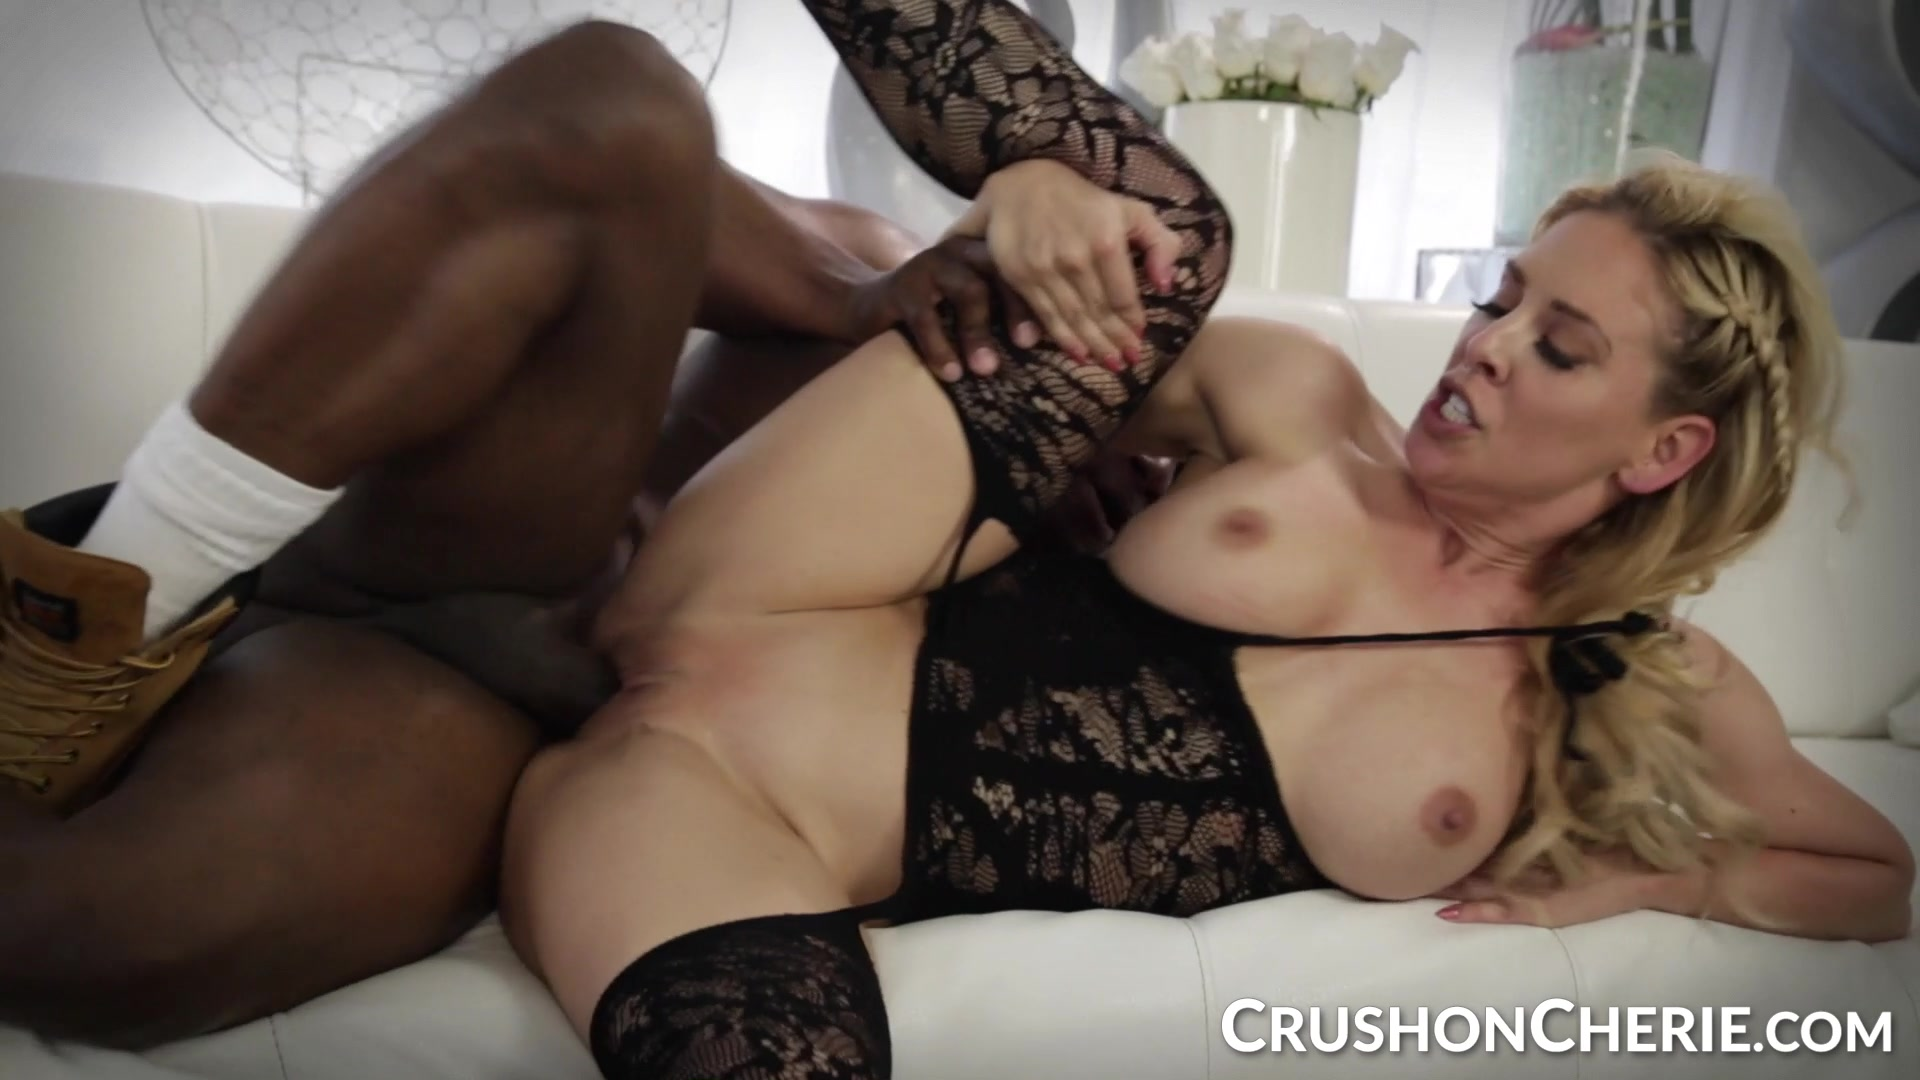 CrushGirls - Cherie Deville sucks and fucks a big black cock www.girl fucks her self solo